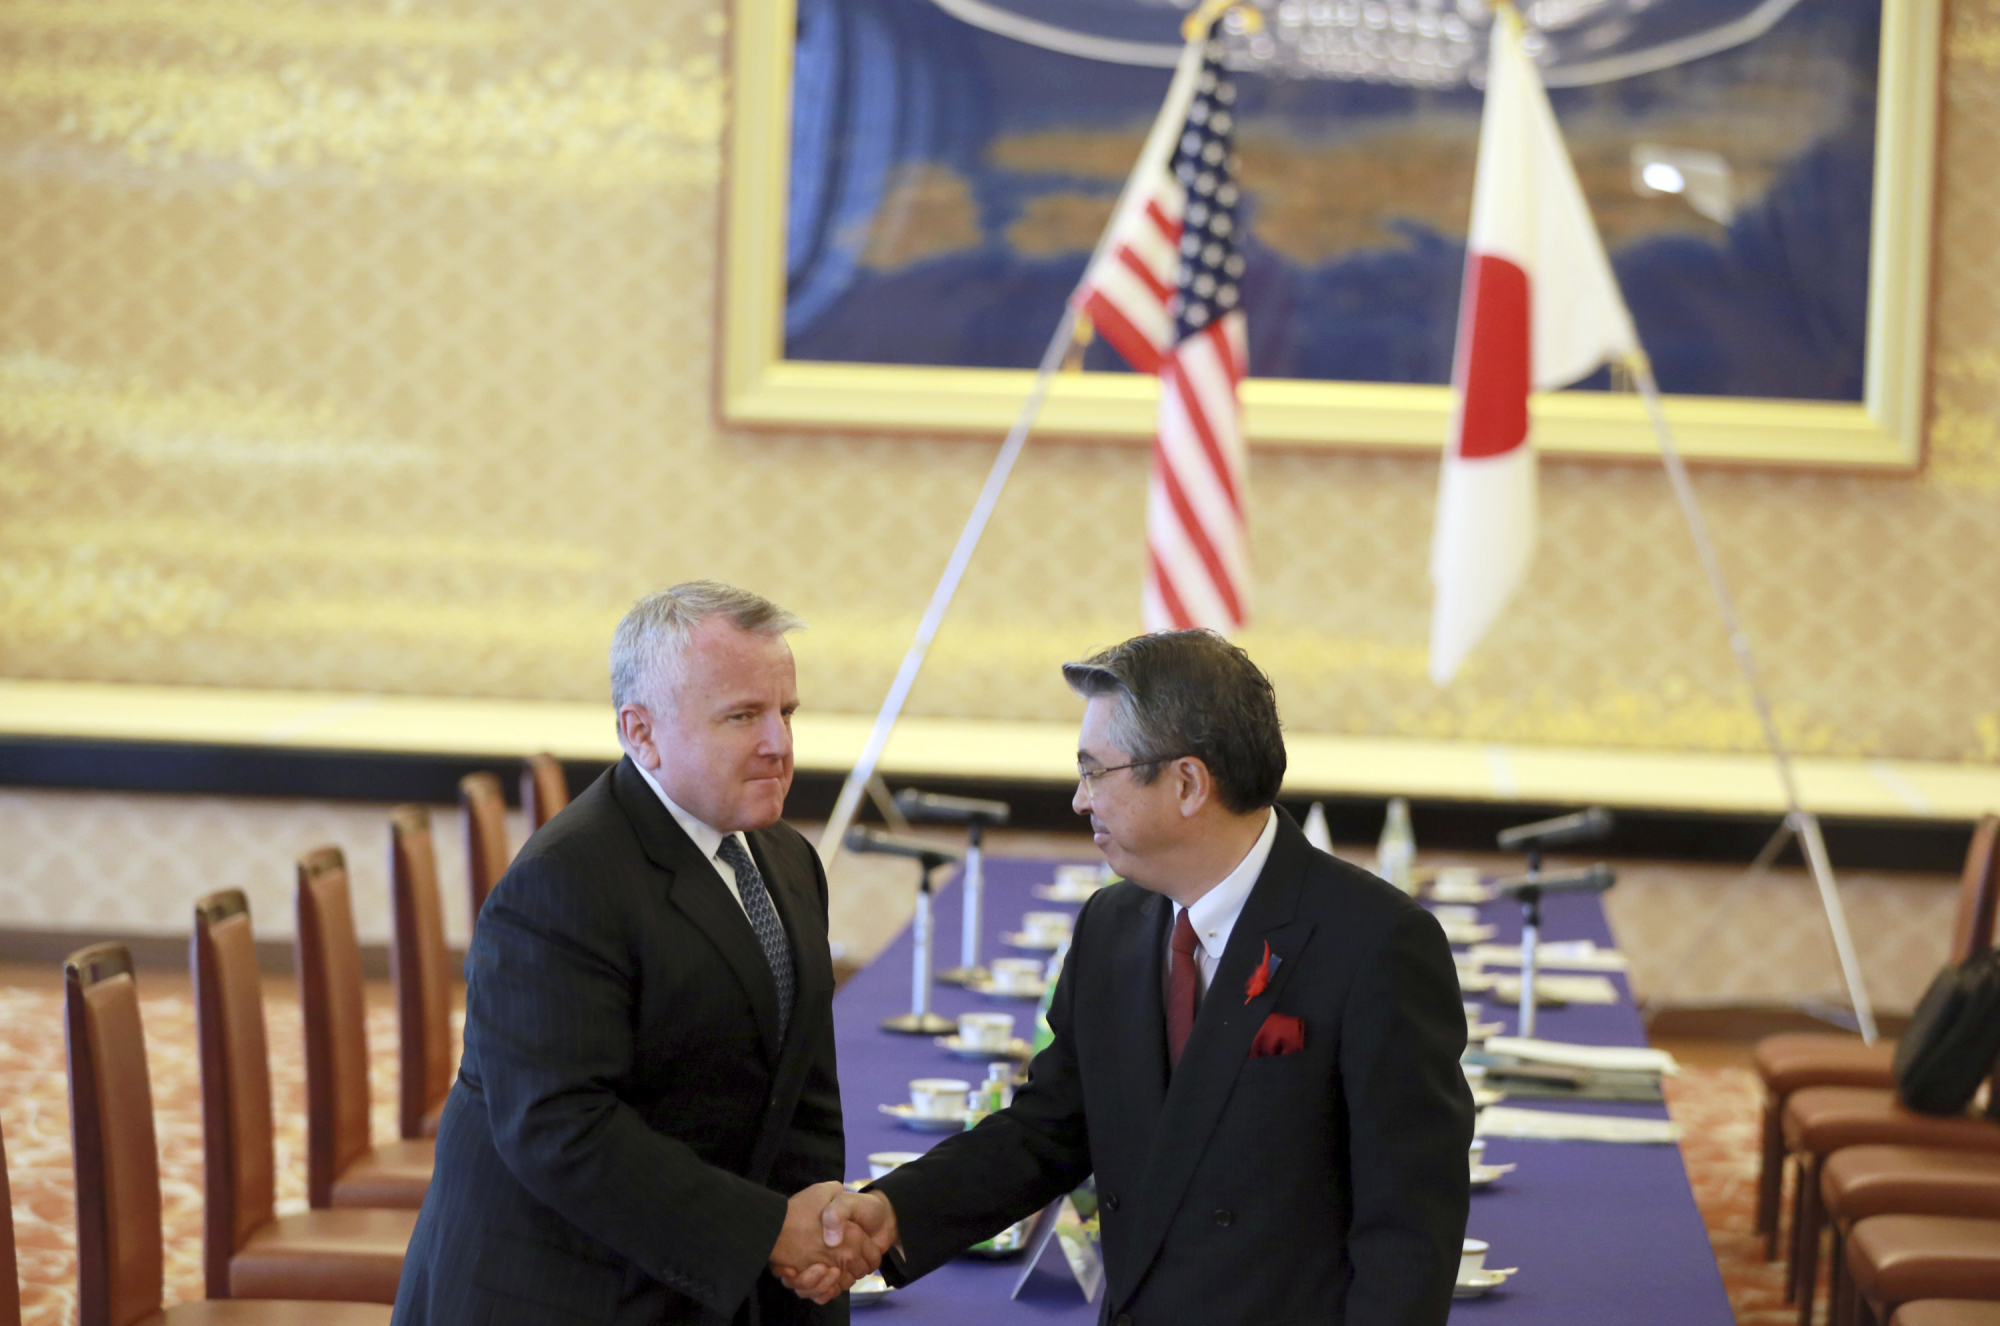 U.S. Deputy Secretary of State John Sullivan and Deputy Foreign Minister Shinsuke Sugiyama shake hands prior to their meeting at Iikura Guesthouse in Tokyo on Tuesday. | AP